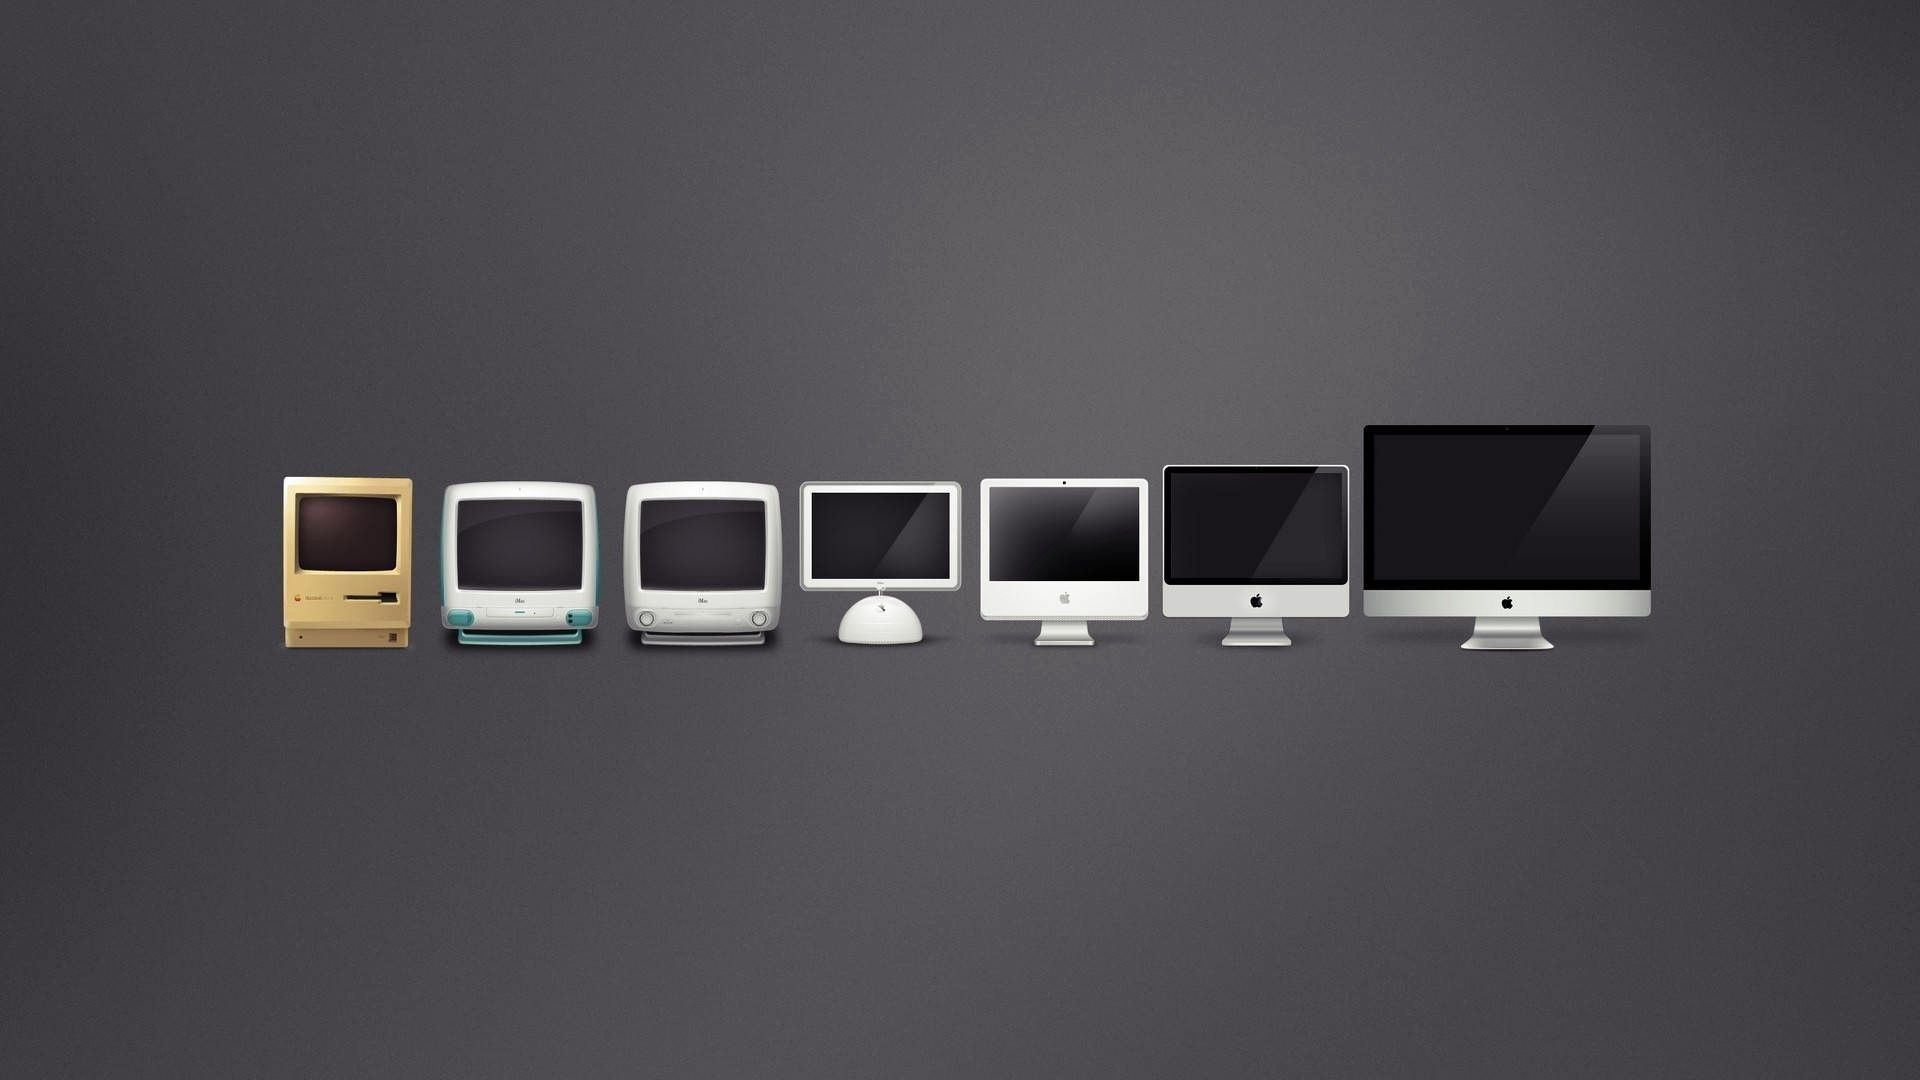 Download Wallpaper X Mac Apple Computers Evolution Full